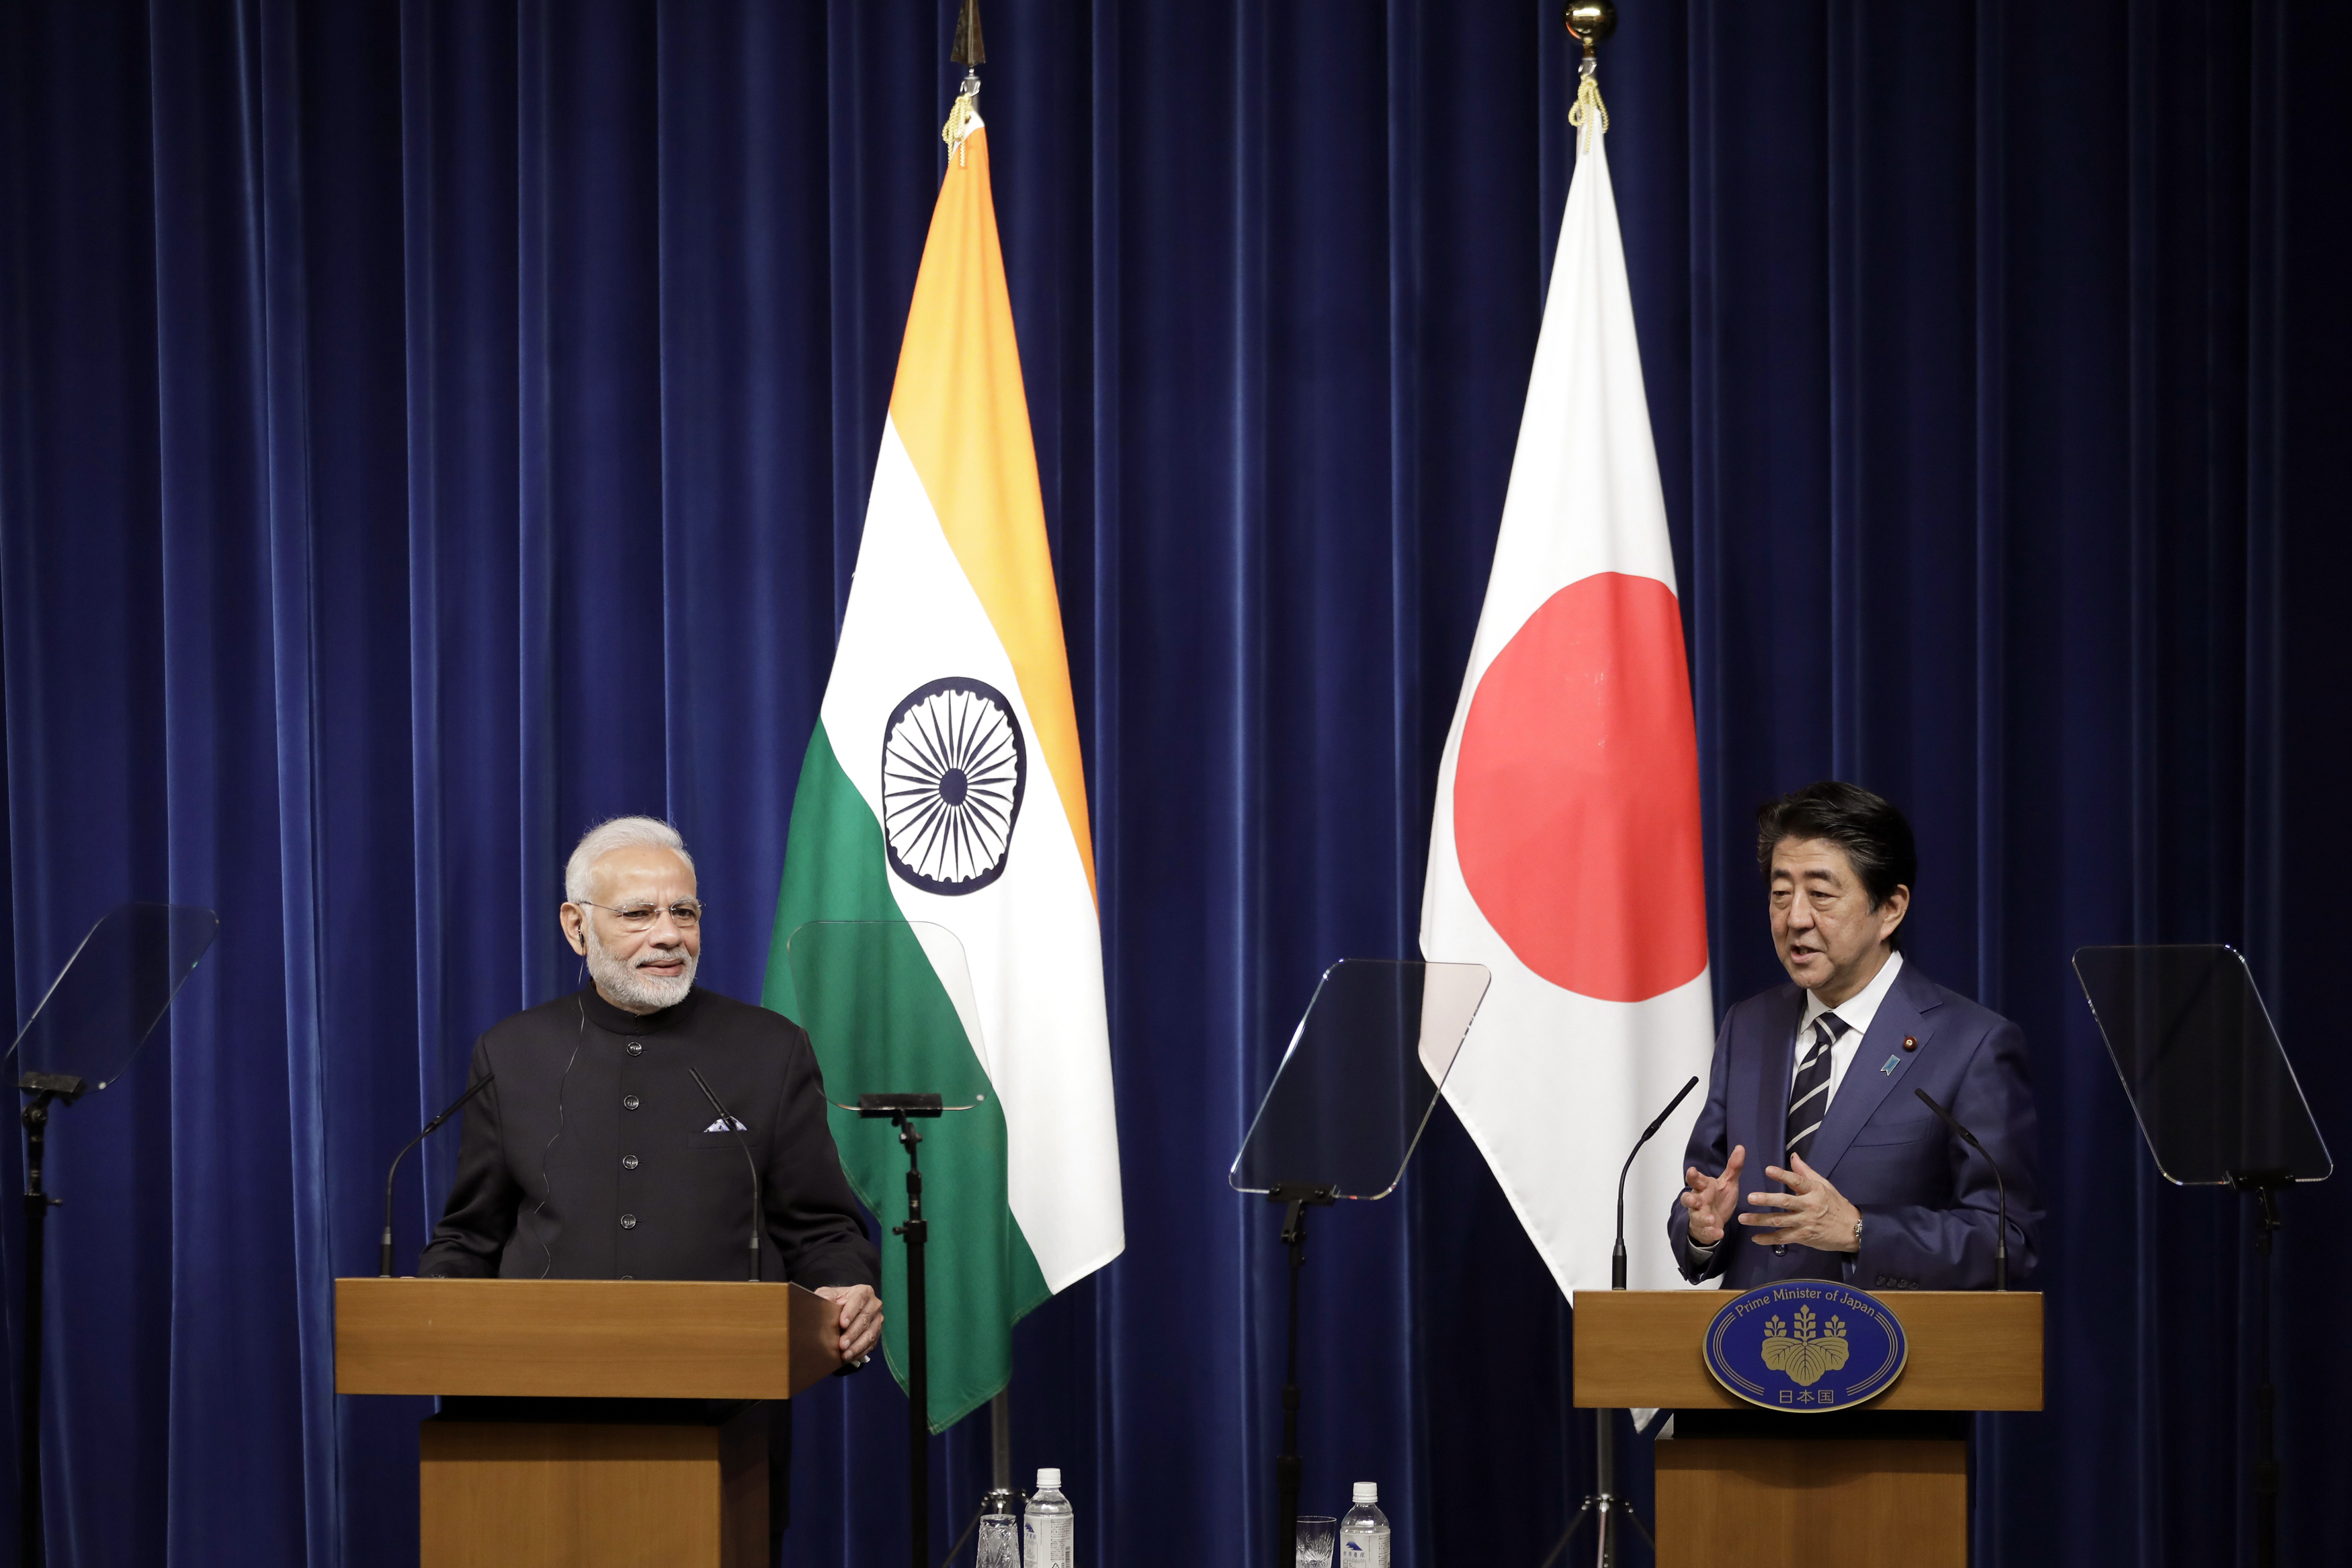 Indian Prime Minister Narendra Modi, left, listens as Japan's Prime Minister Shinzo Abe speaks during a joint news conference at Abe's official residence in Tokyo - AP